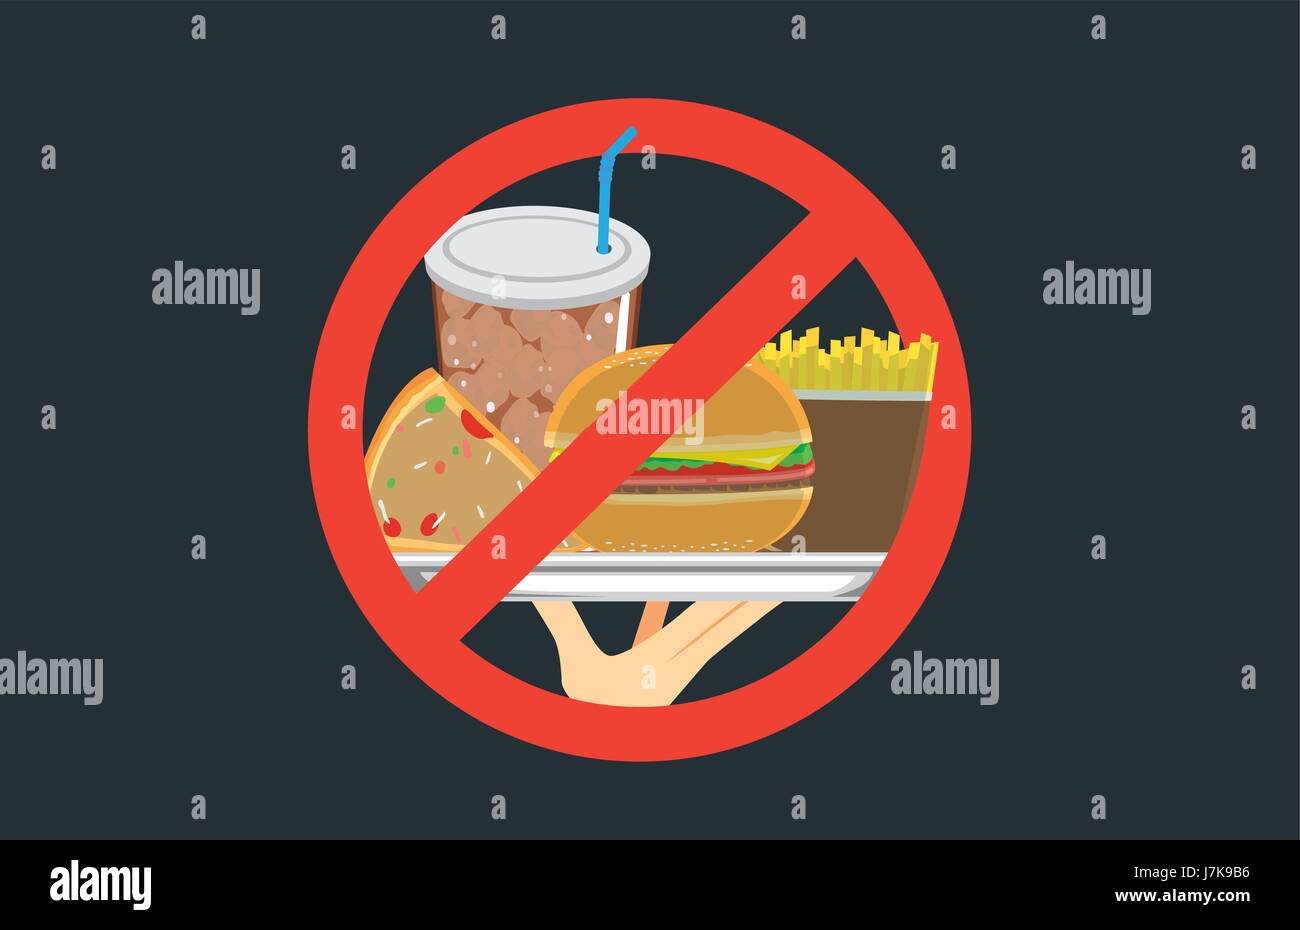 Hand holding fast food in silver dish with stop signal. - Stock Vector